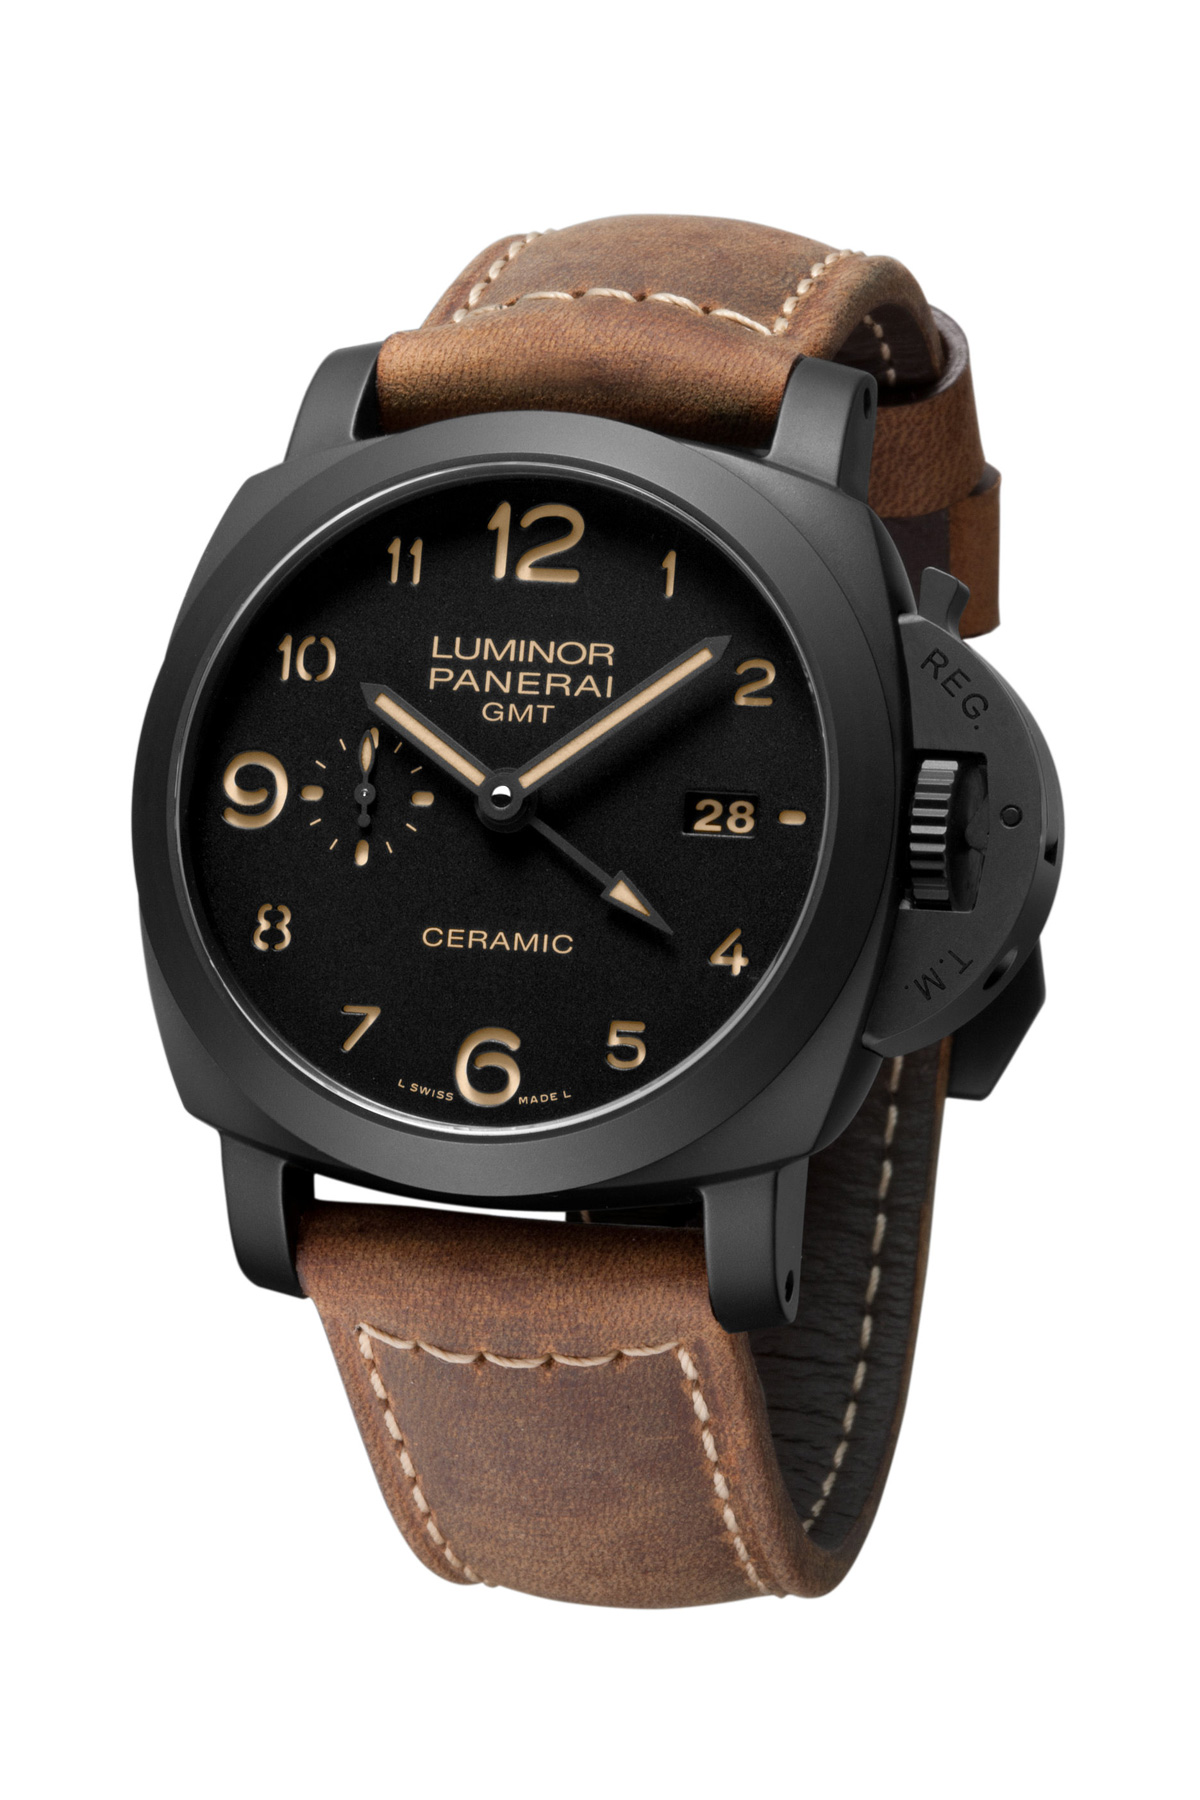 Panerai Luminor 1950 3 Days GMT Automatic Ceramica Watch